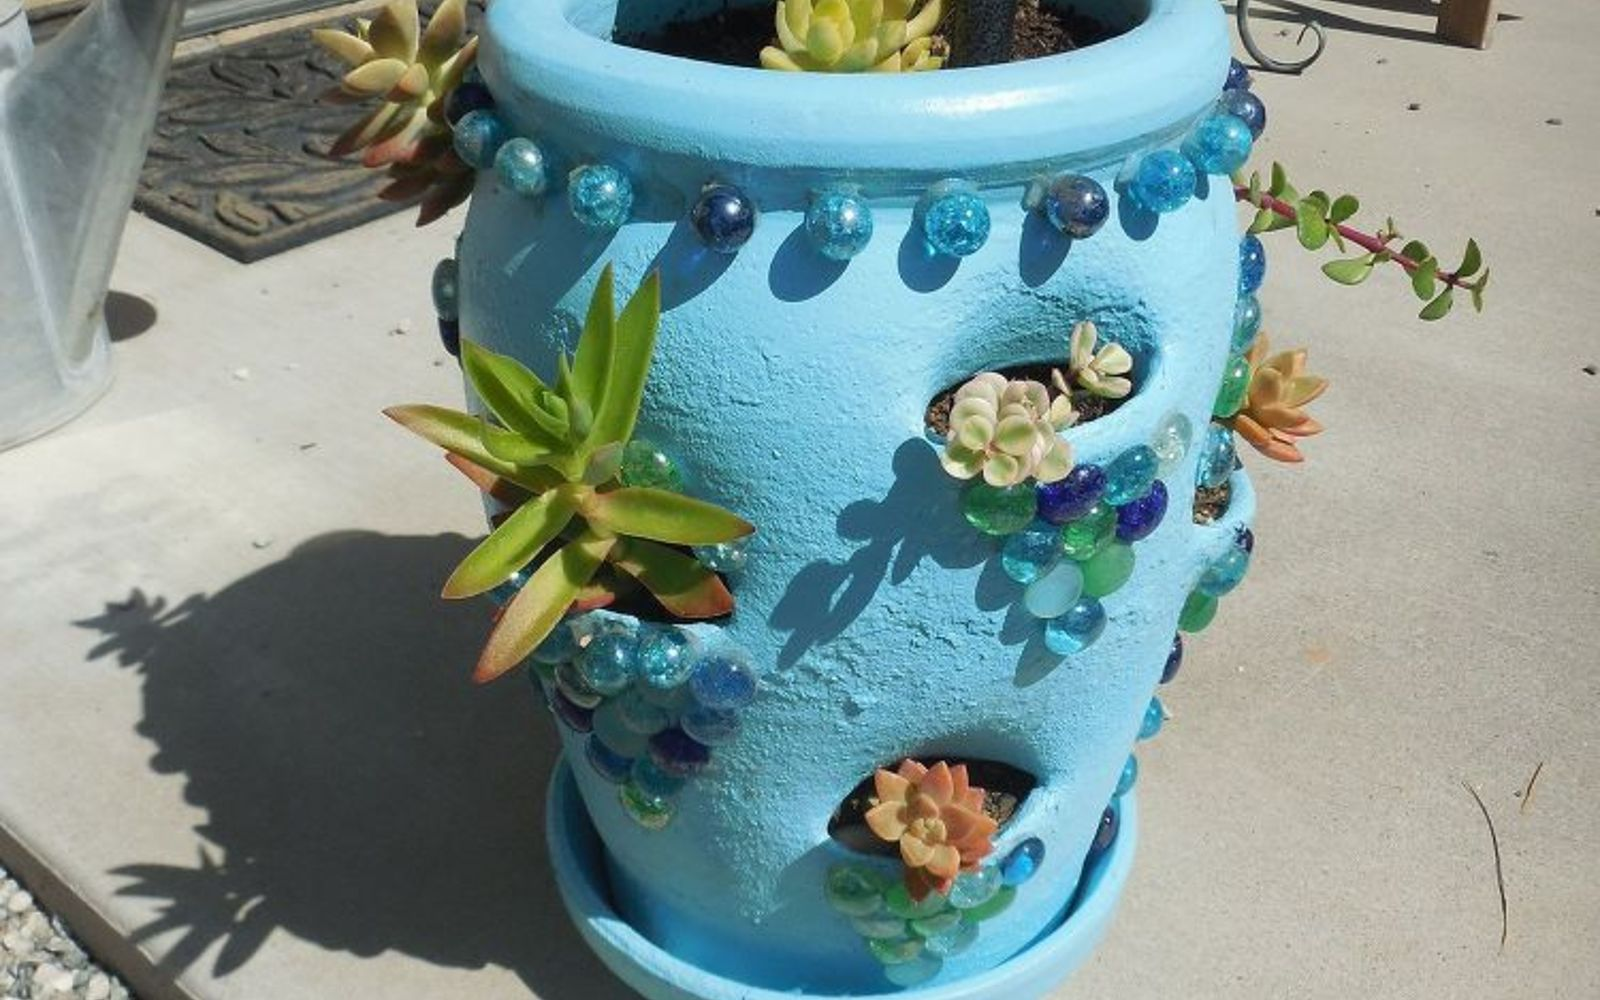 s 17 insanely fun ways to display your favorite succulents, flowers, gardening, succulents, Use a strawberry pot as a peek a boo planter